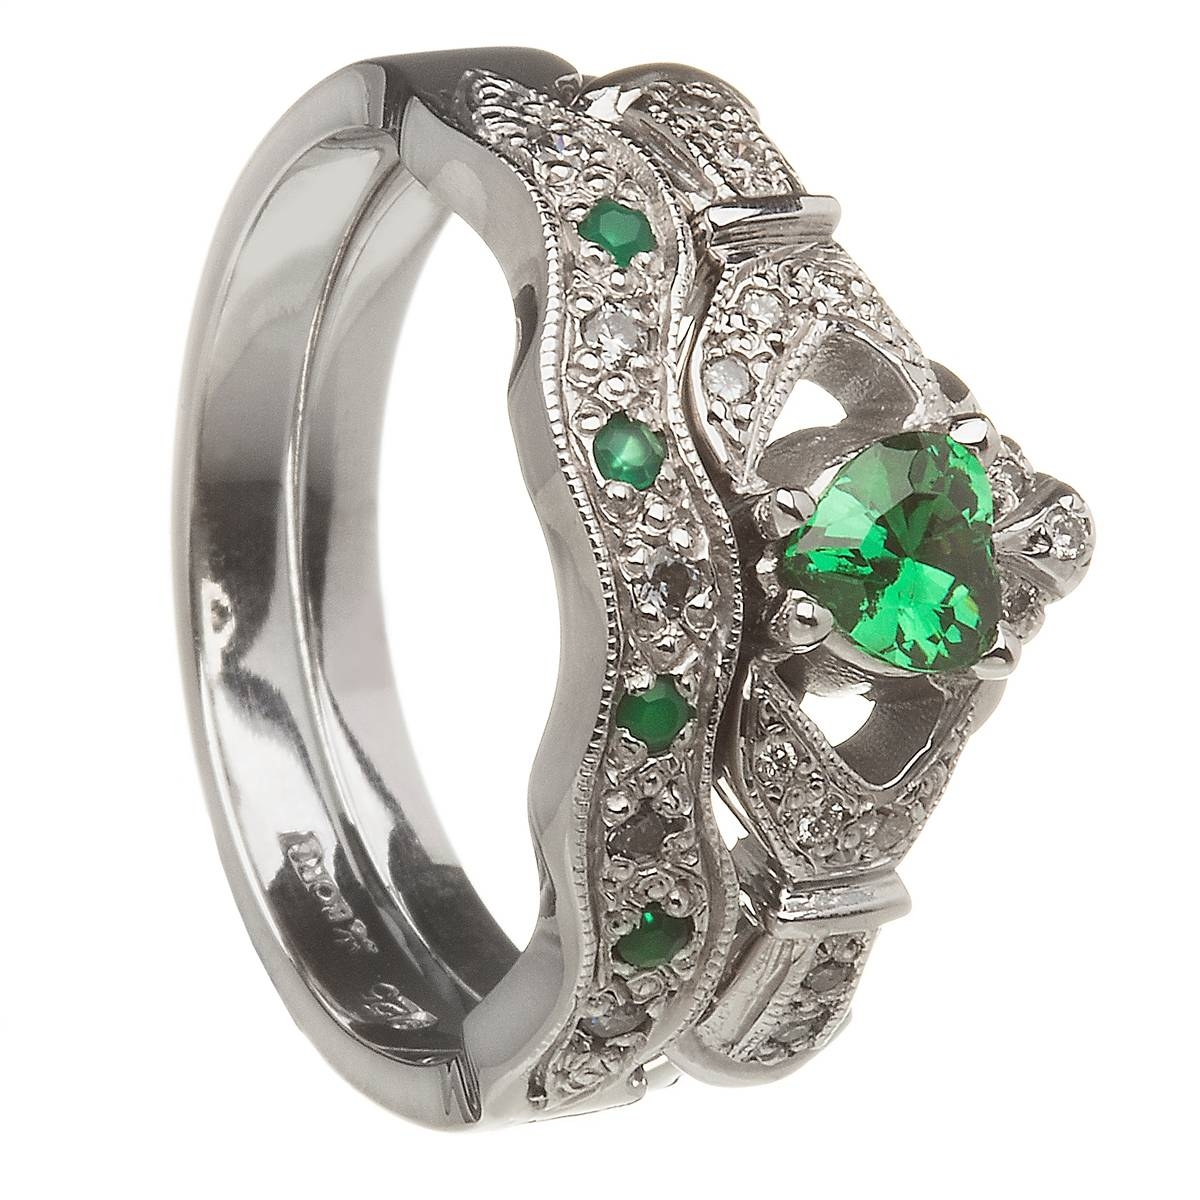 14K White Gold Emerald Set Heart Claddagh Ring & Wedding Ring Set Intended For Claddagh Rings Engagement Diamond (View 11 of 15)